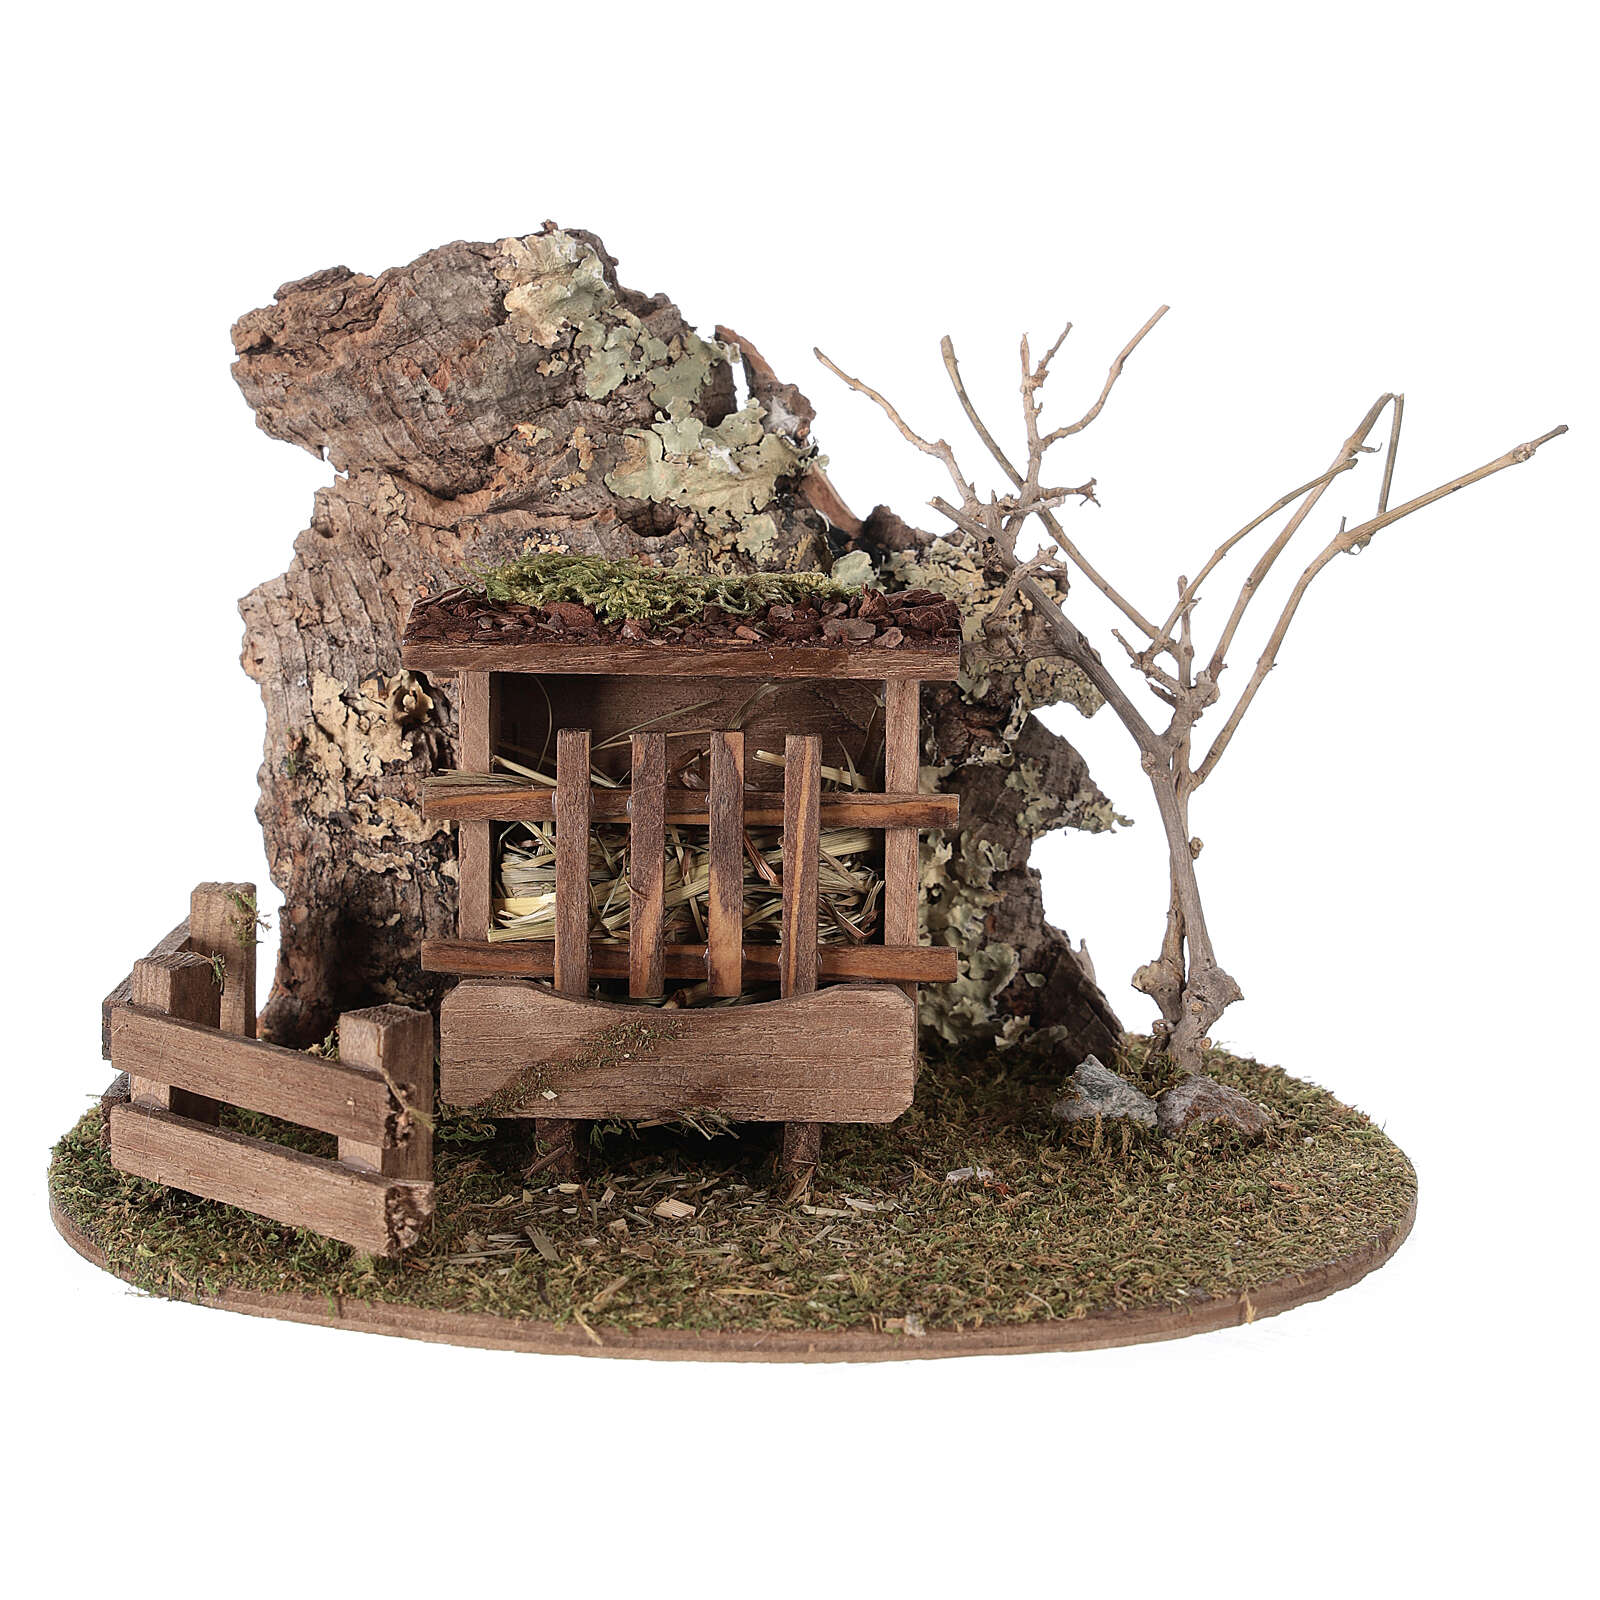 Feed fence figurine Nordic nativity 8-10-12 cm 4